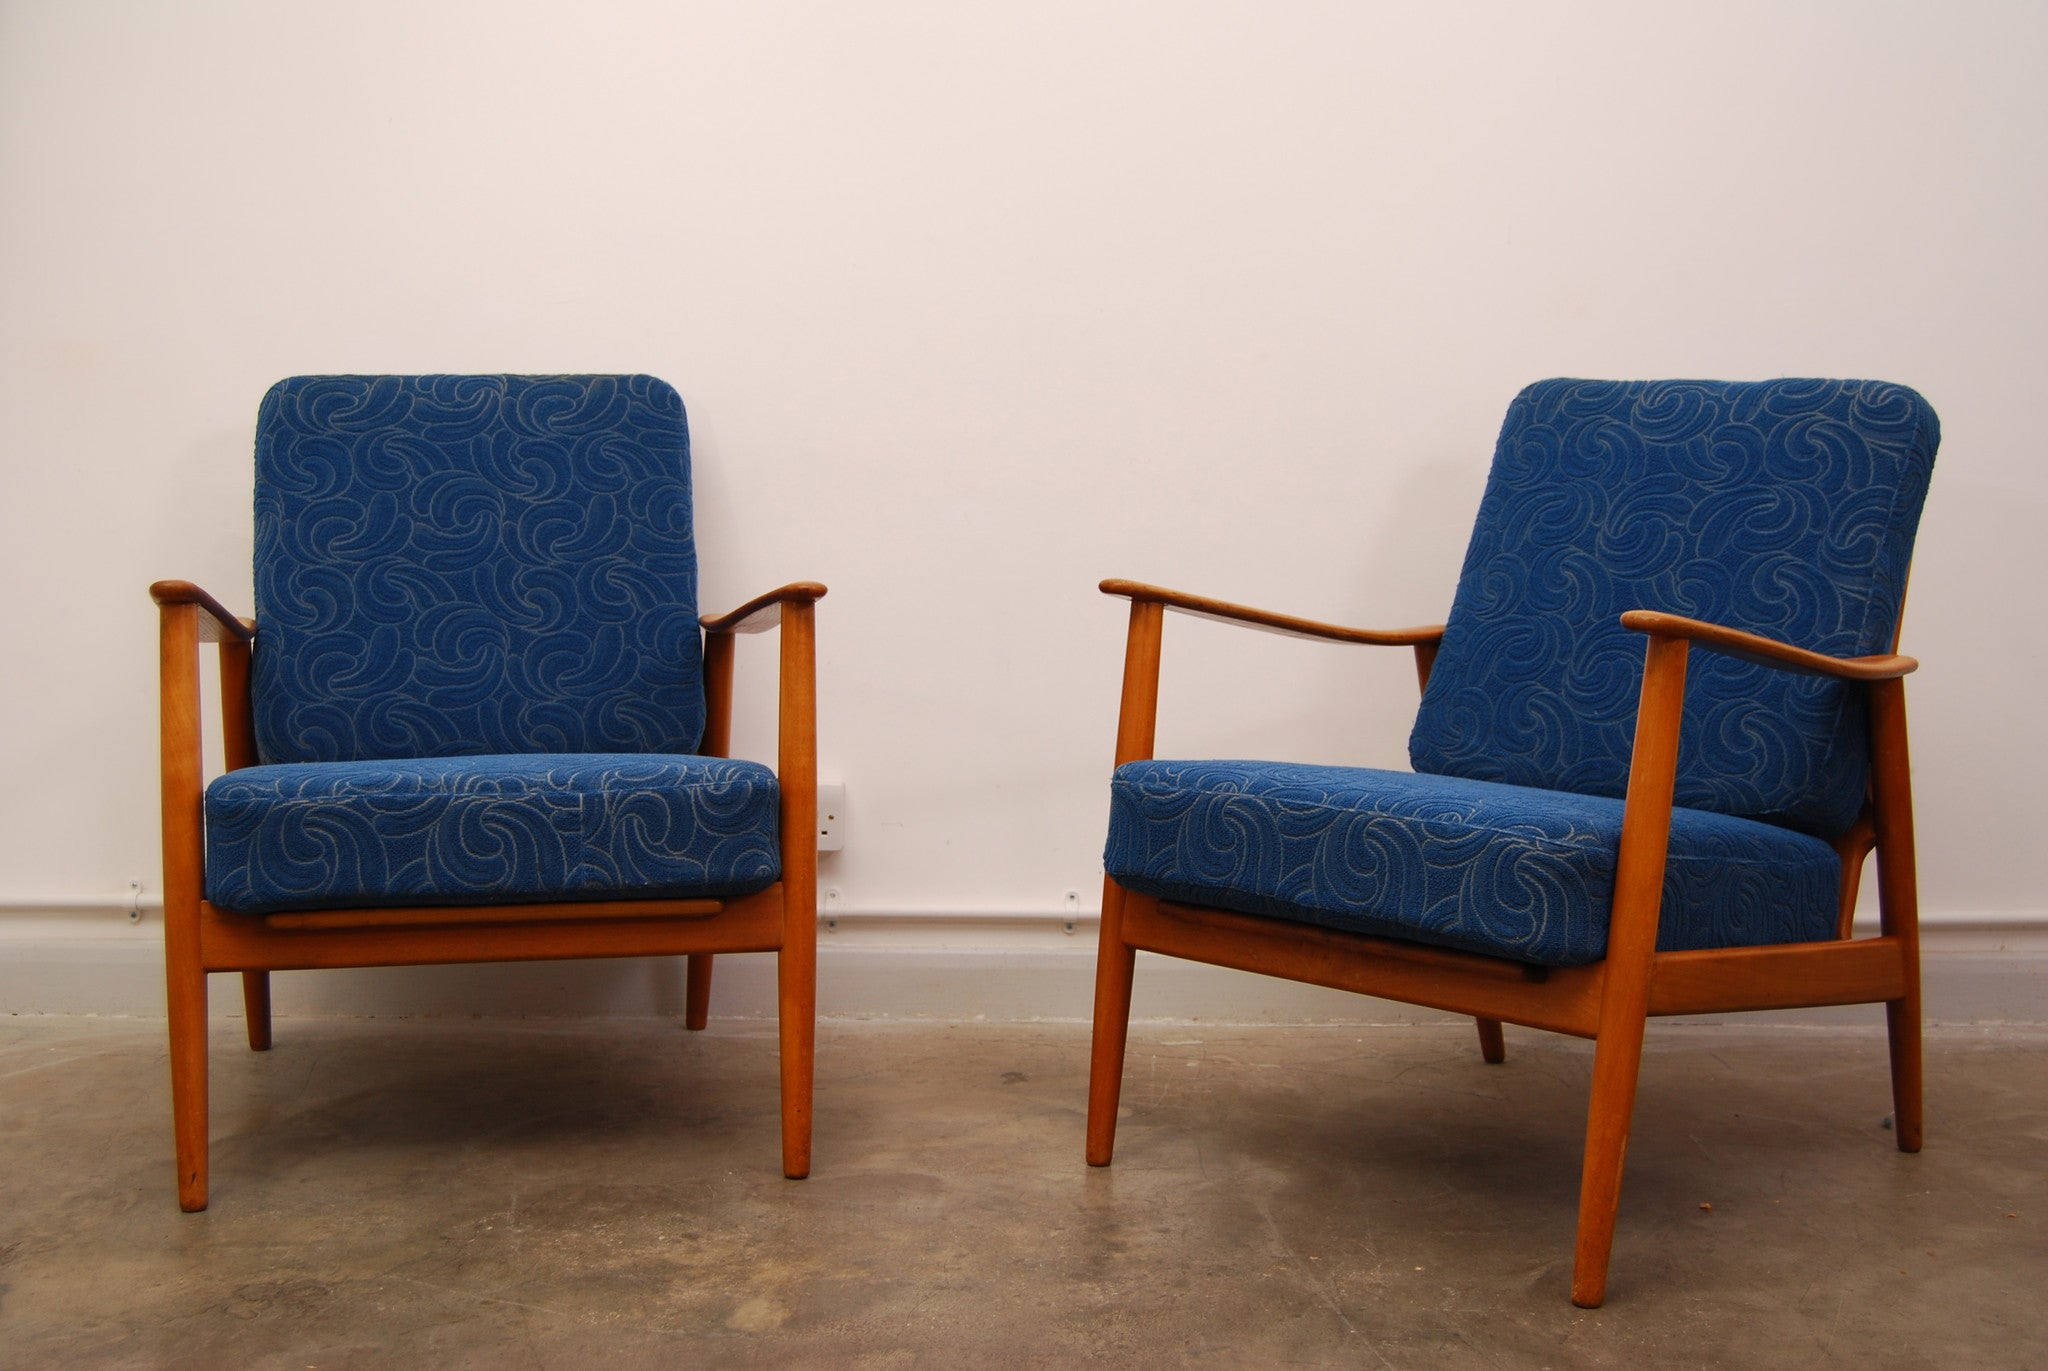 Pair of oak and teak lounge chairs